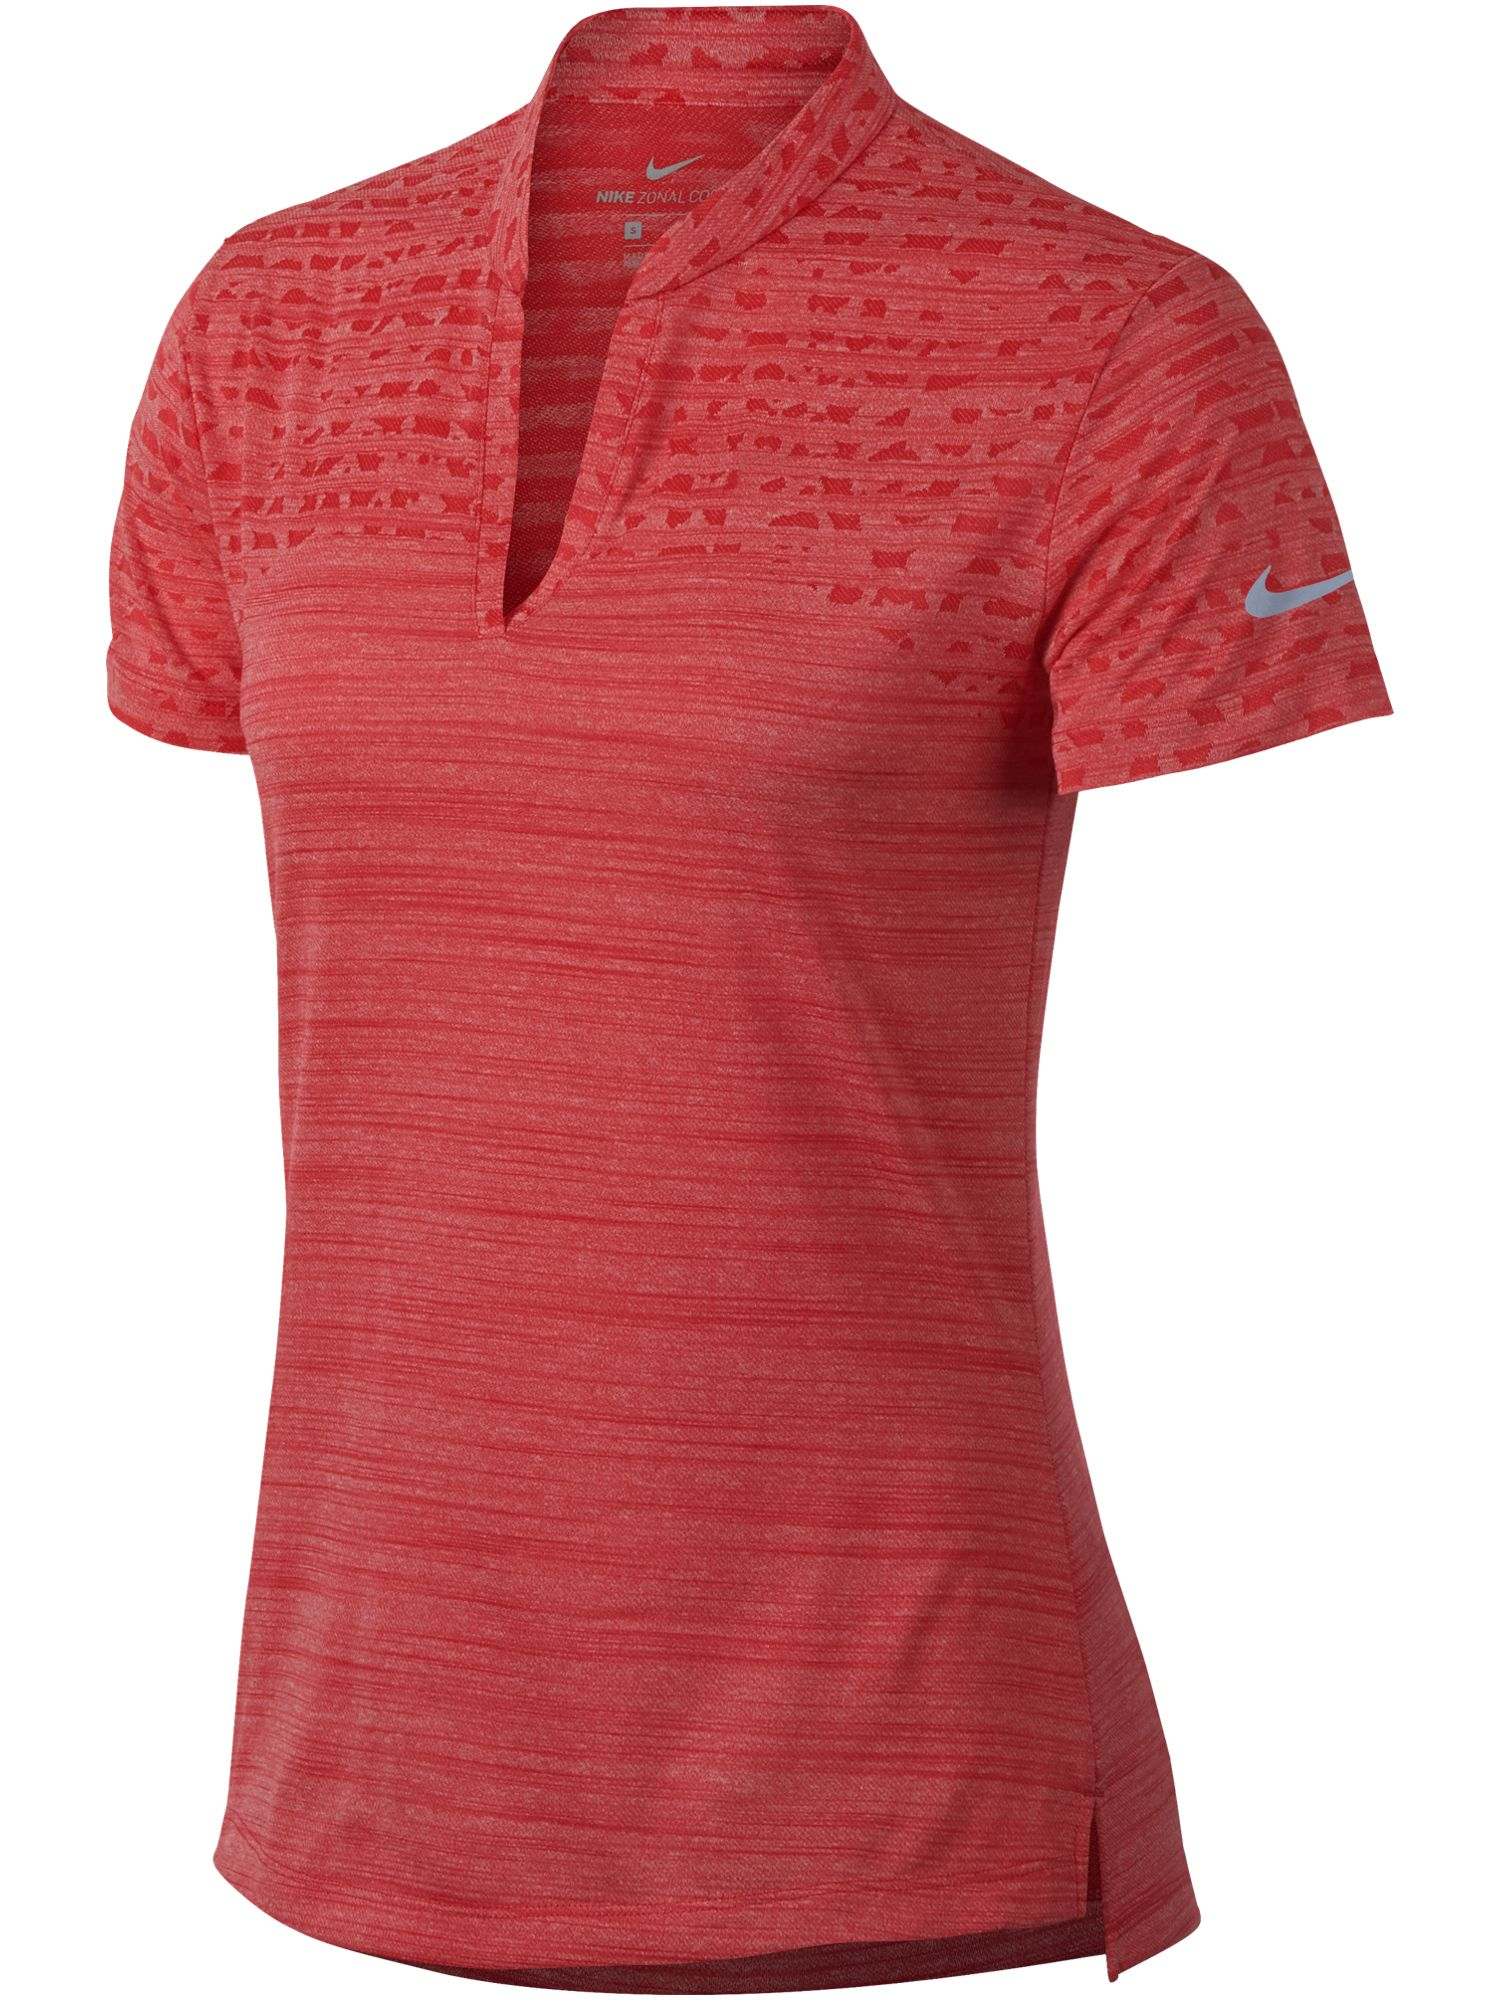 Nike Golf Zonal Cooling Polo, Hot Pink